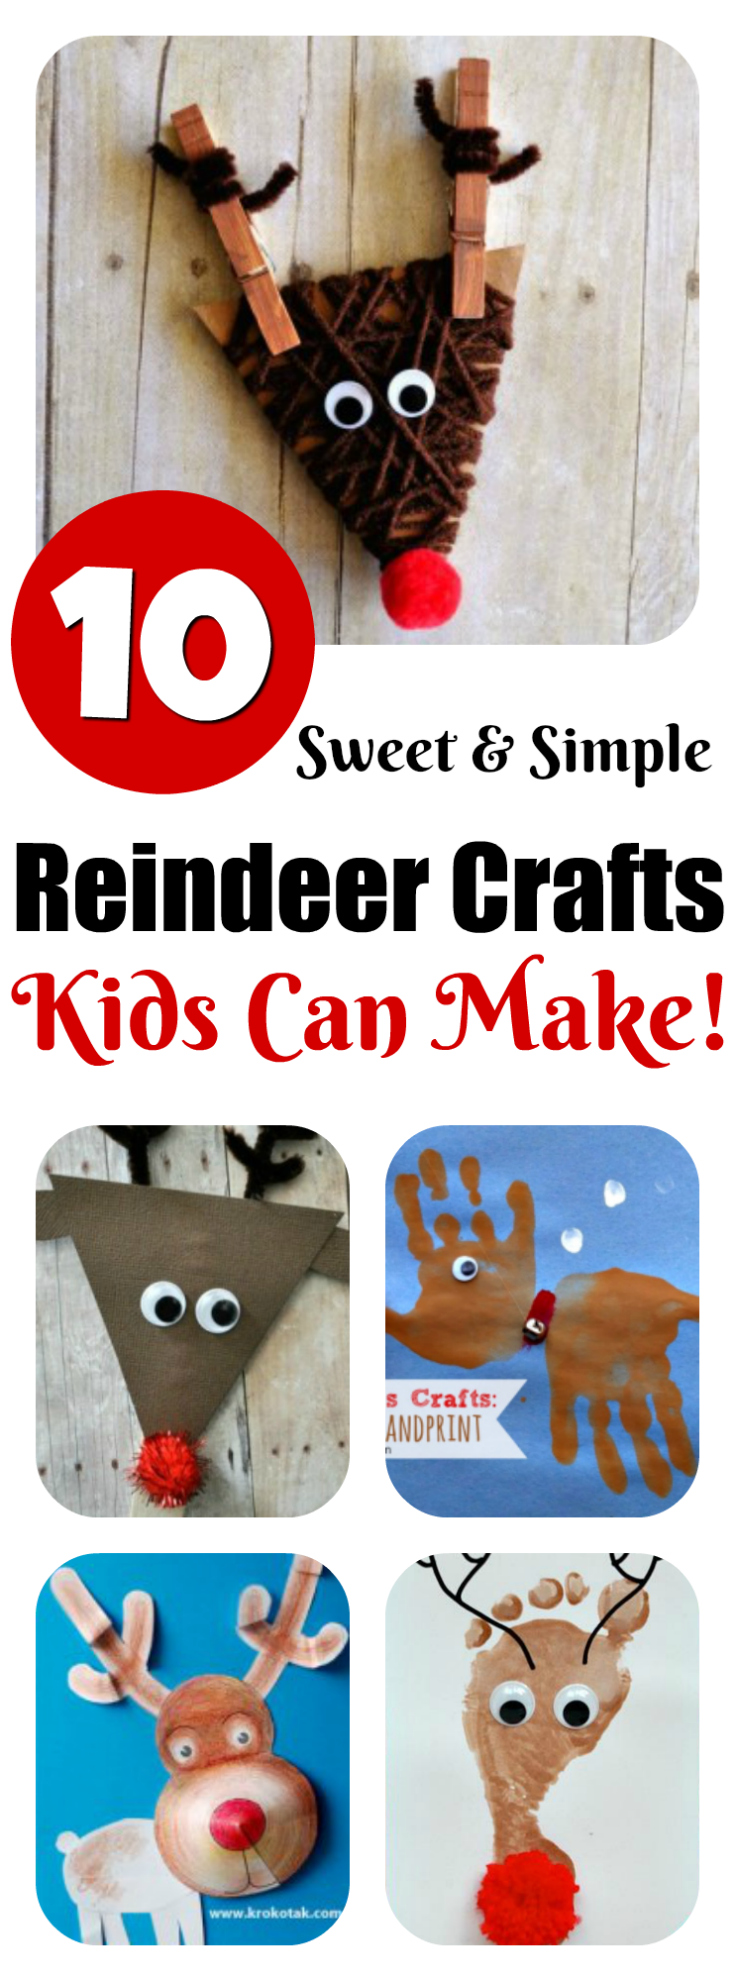 easy christmas craft ideas for kids to make reindeer crafts can make 10 ideas letters 8201